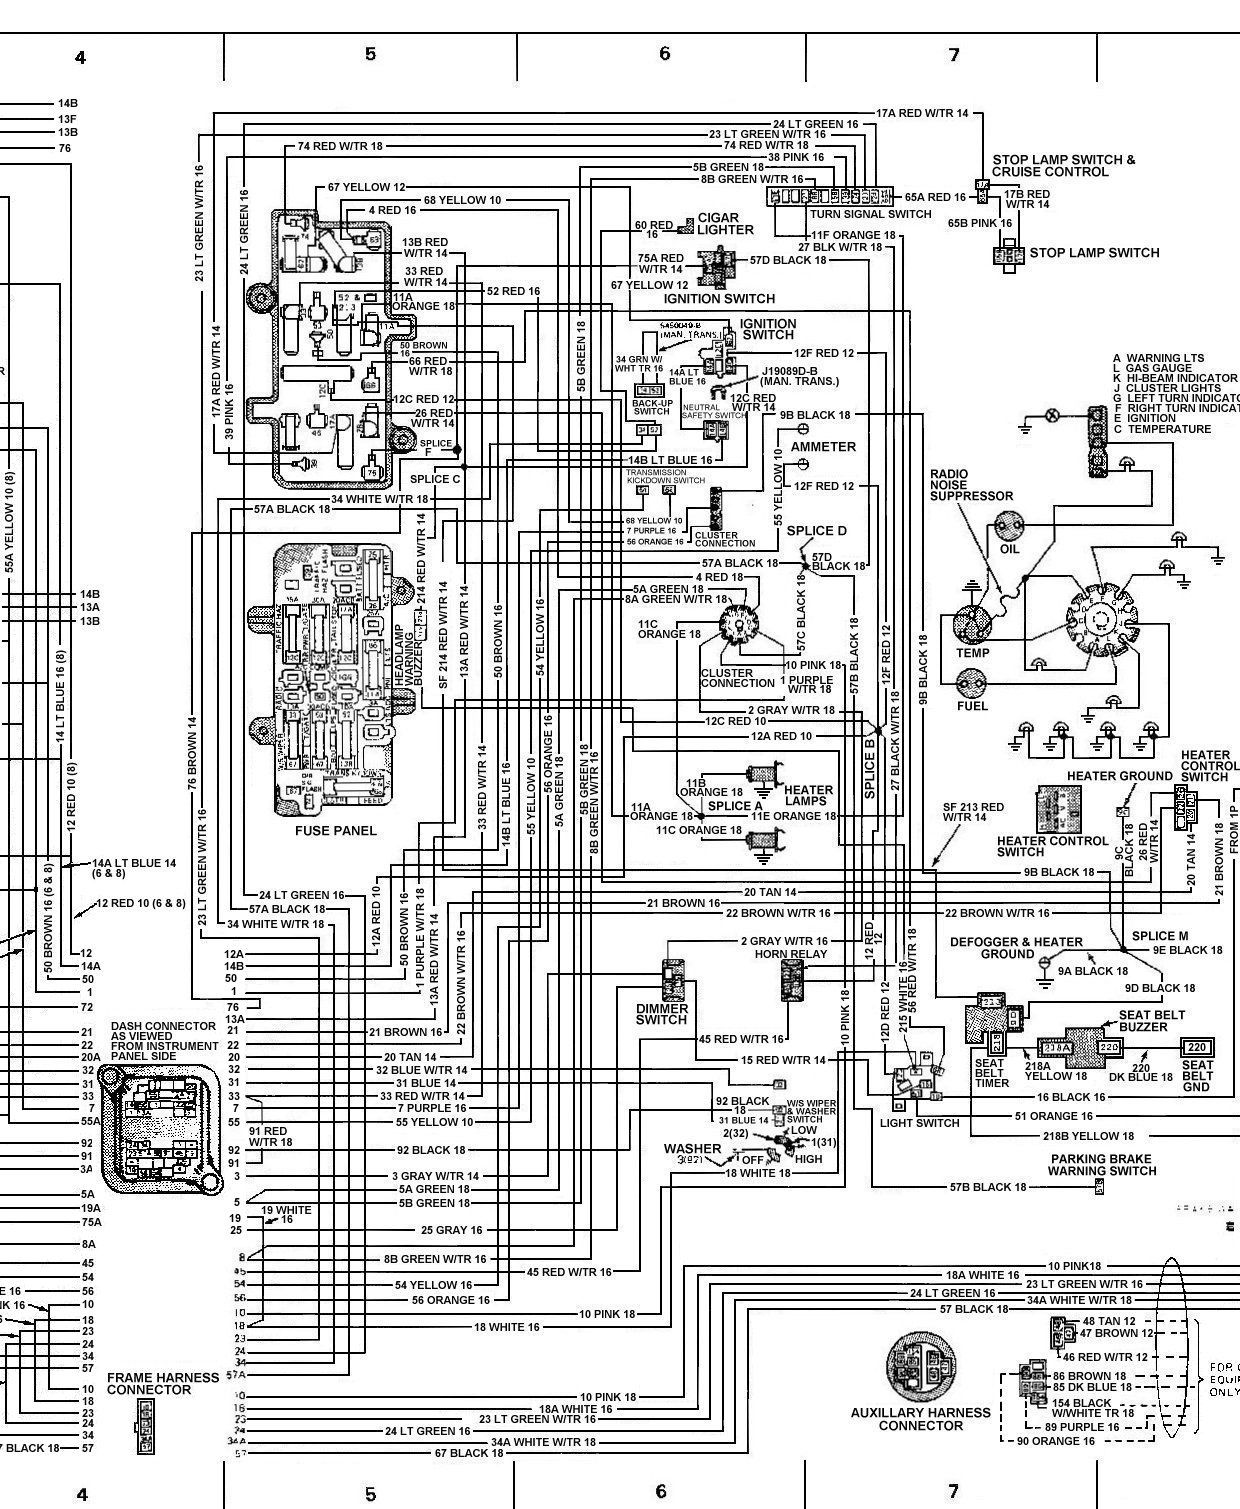 Vw Caddy Abs Wiring Diagram 2007 Toyota Yaris Anti Braking System